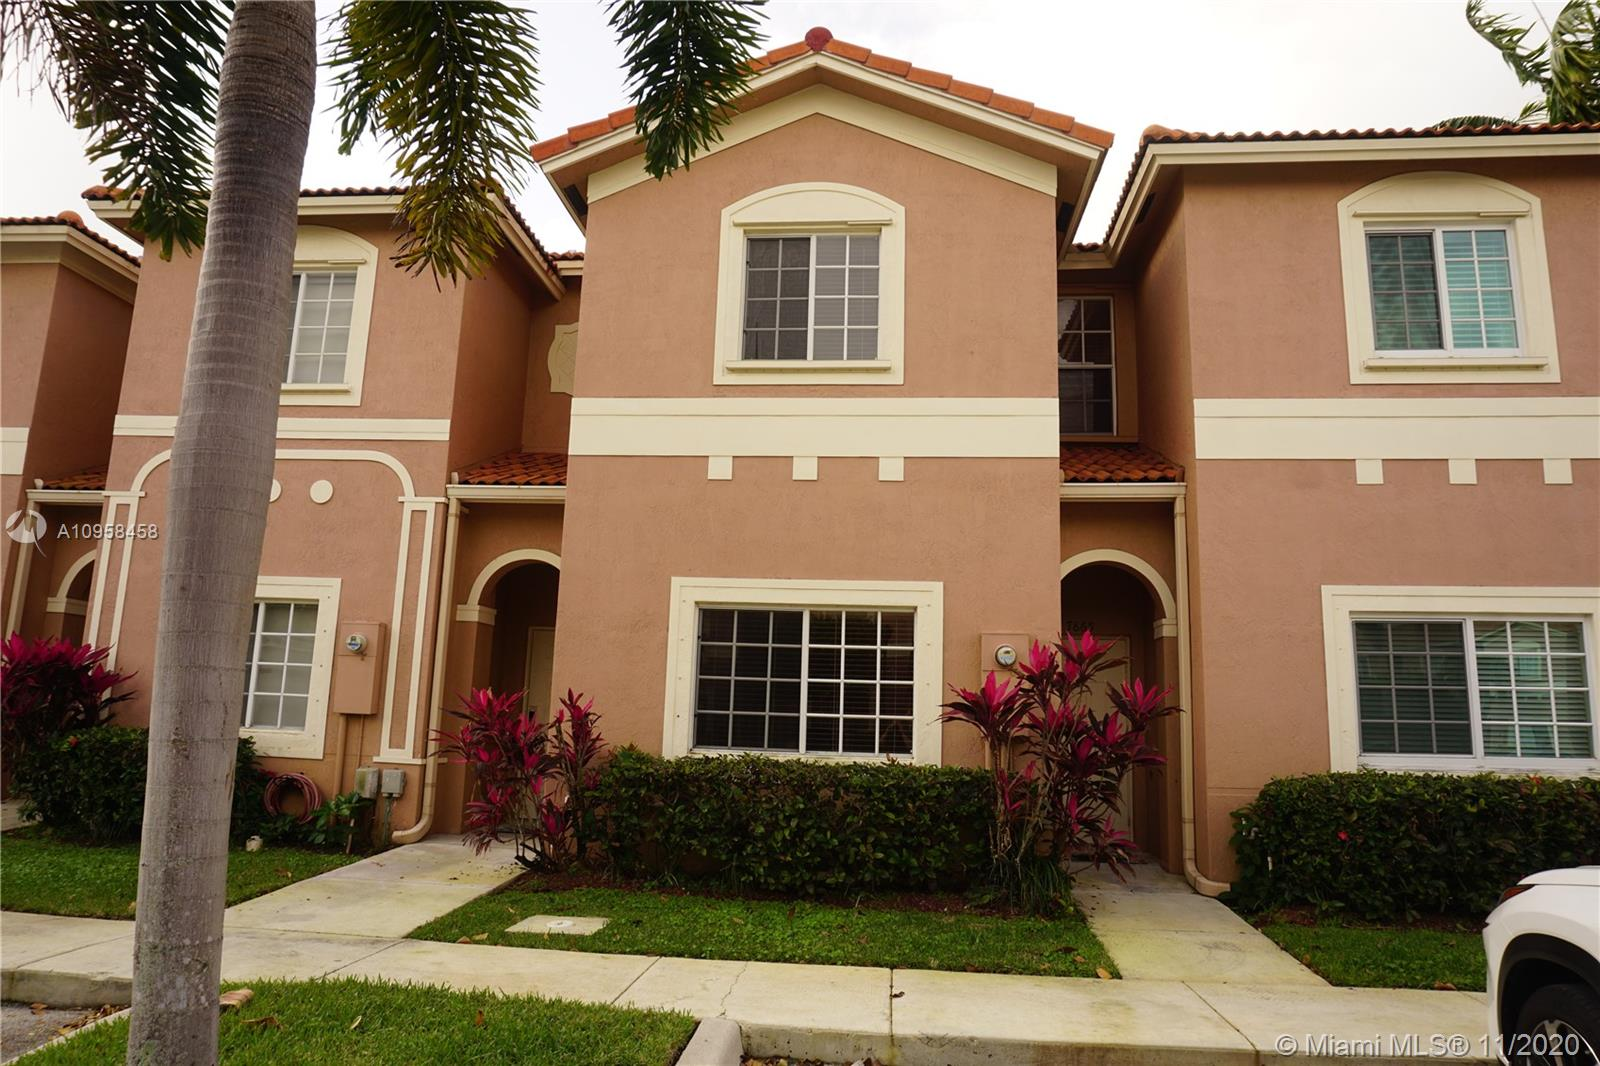 This townhouse has 3 bedrooms and 2.5 bathrooms.  It is ready to move in and it is very spacious. Ceramic flooring downstairs and wooden flooring upstairs.  Outstanding lake view from the living room and master bedroom. All stainless steel appliances and comes with wind impact sliding door.